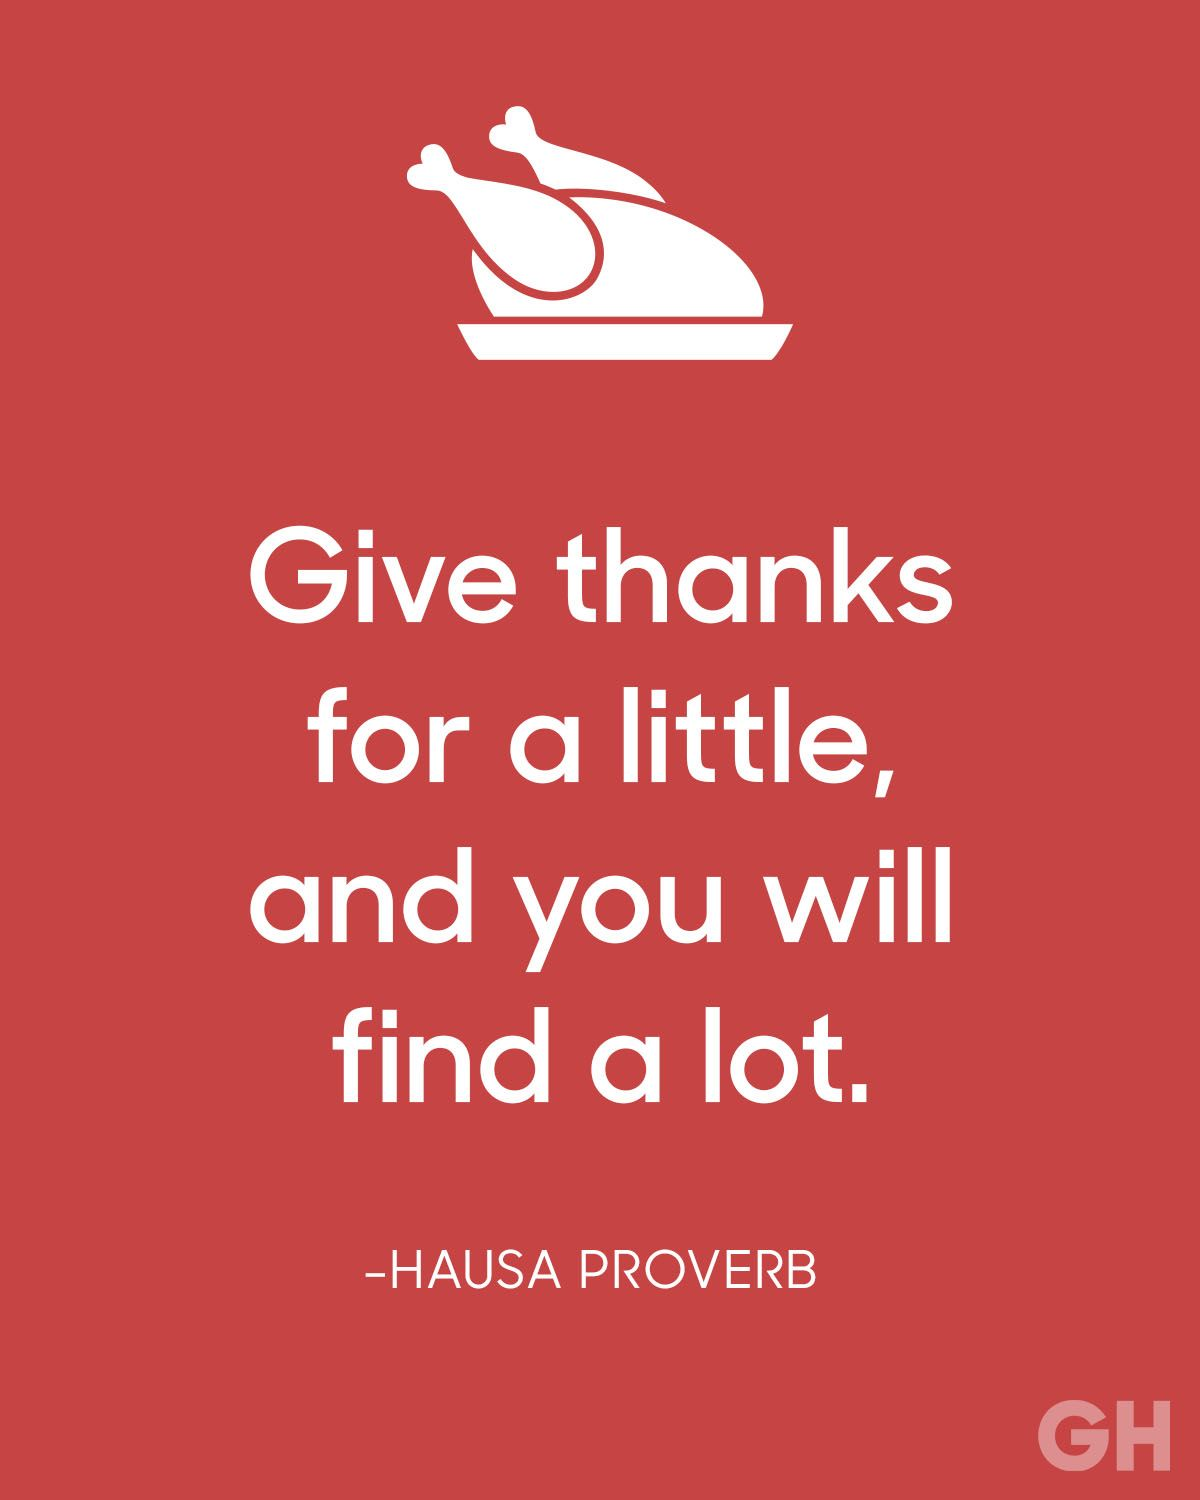 Thanksgiving Inspirational Quotes The 15 Best Quotes To Share During Your Thanksgiving Toast